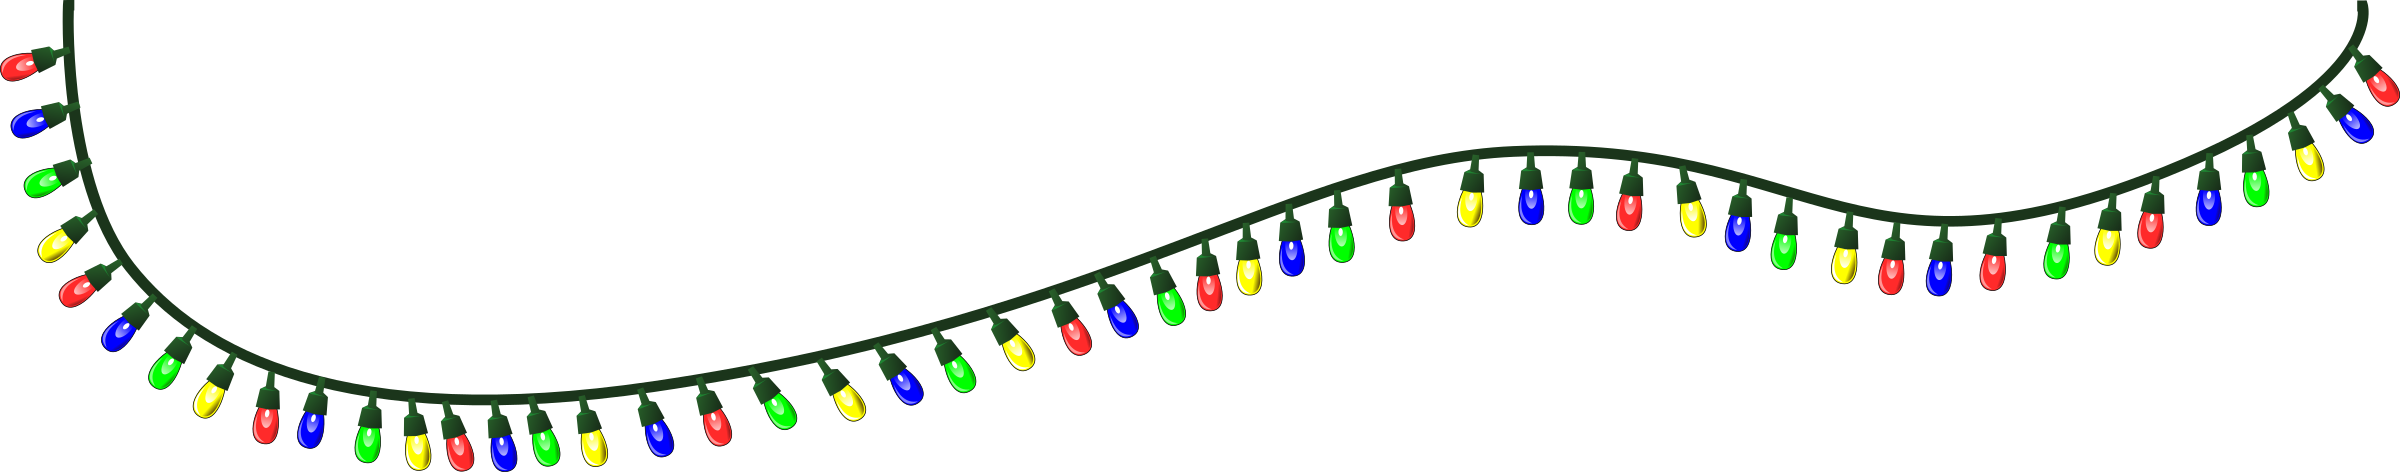 Christmas lights clipart transparent background picture free stock Free Christmas Lights Clipart Pictures - Clipartix picture free stock